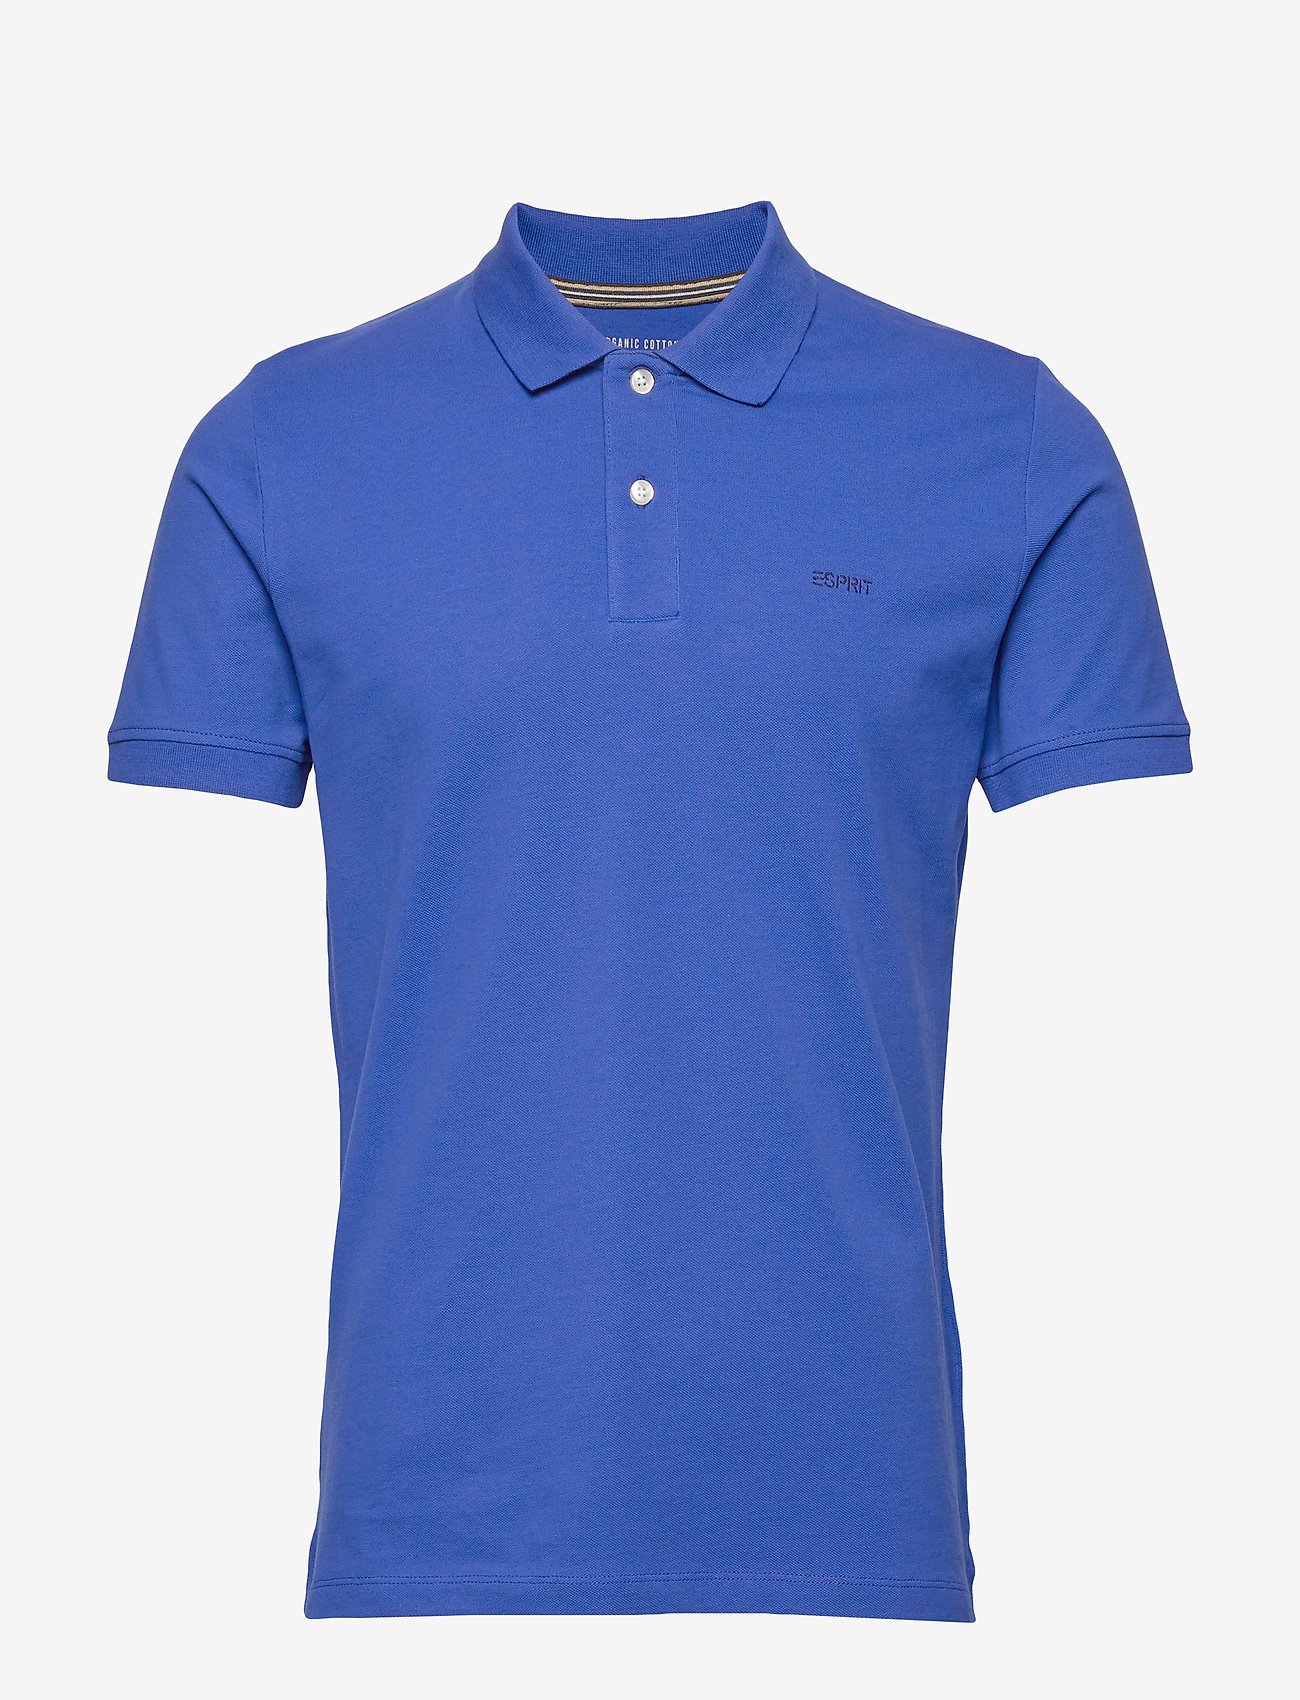 Esprit Casual - Polo shirts - korte mouwen - bright blue - 0